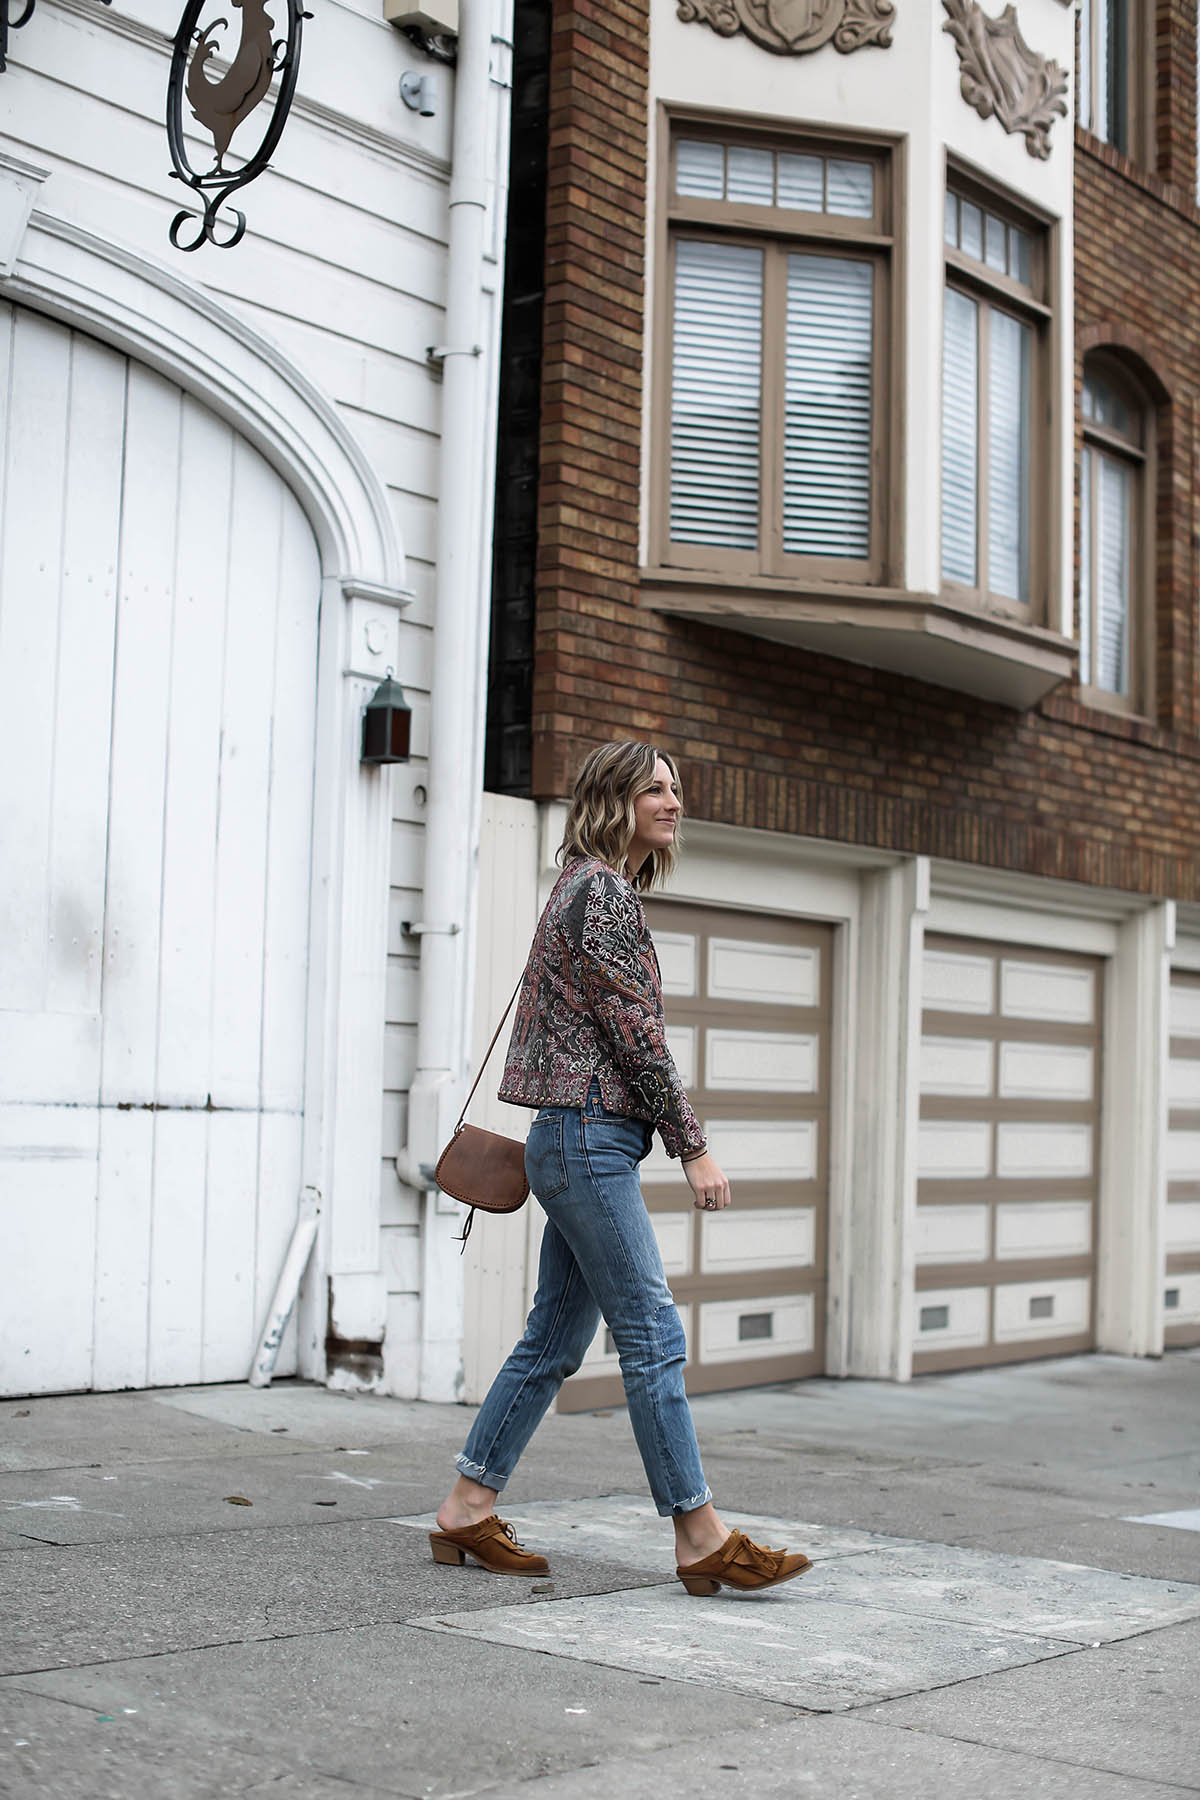 anthropologie statement jacket and jeans outfit